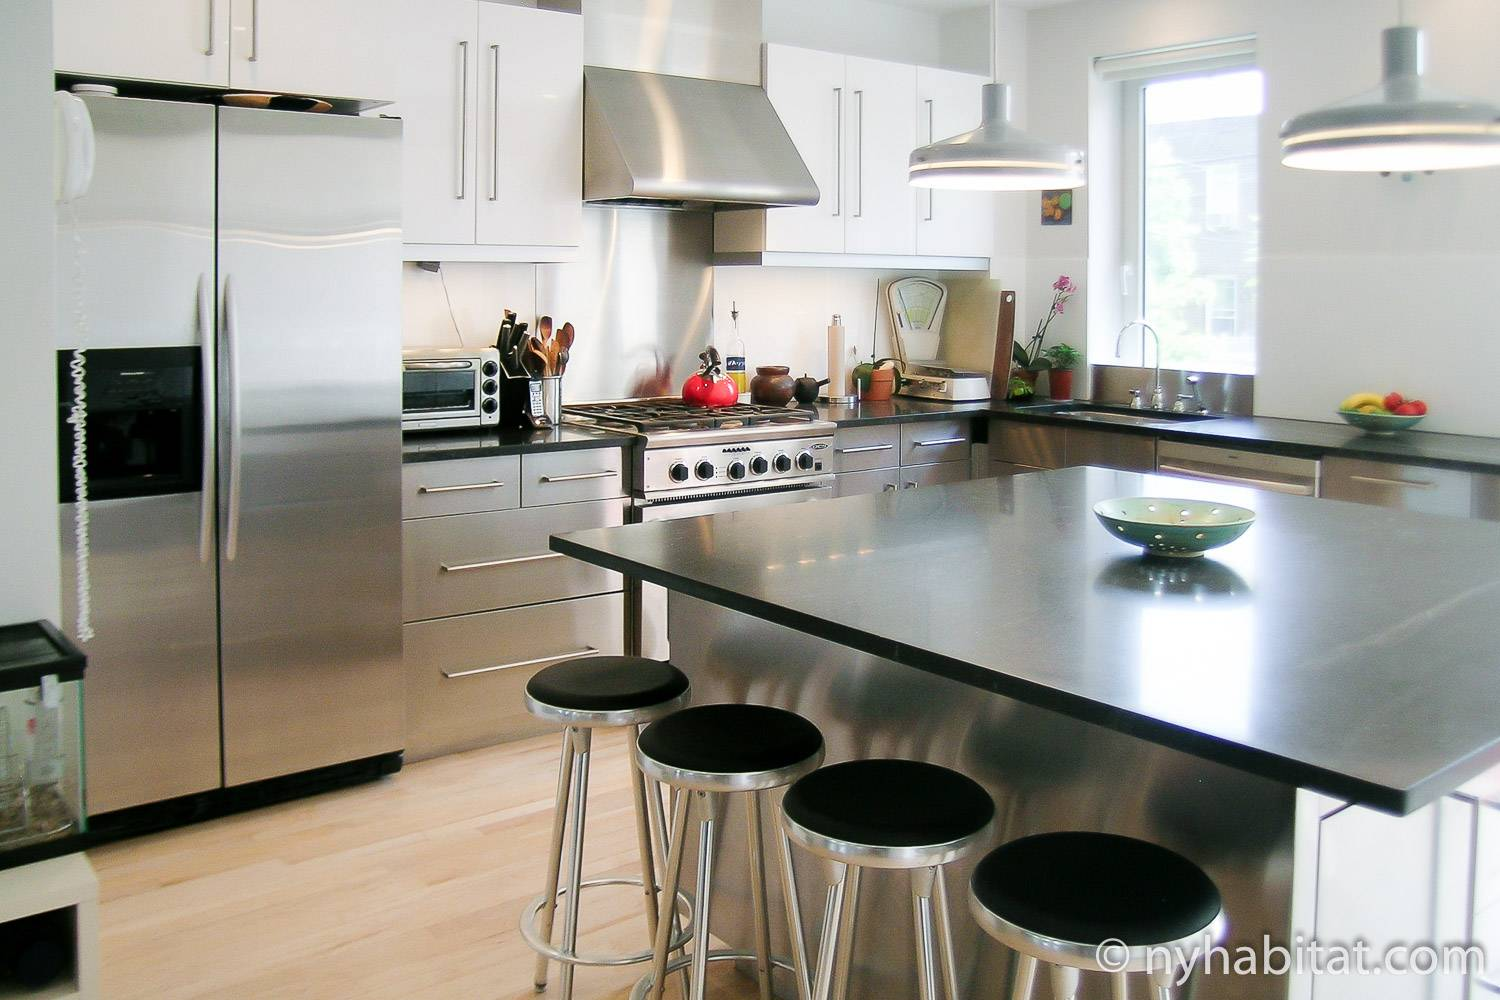 Image of fully-equipped kitchen of furnished apartment NY-14914 in Park Slope, Brooklyn with center island with bar stools